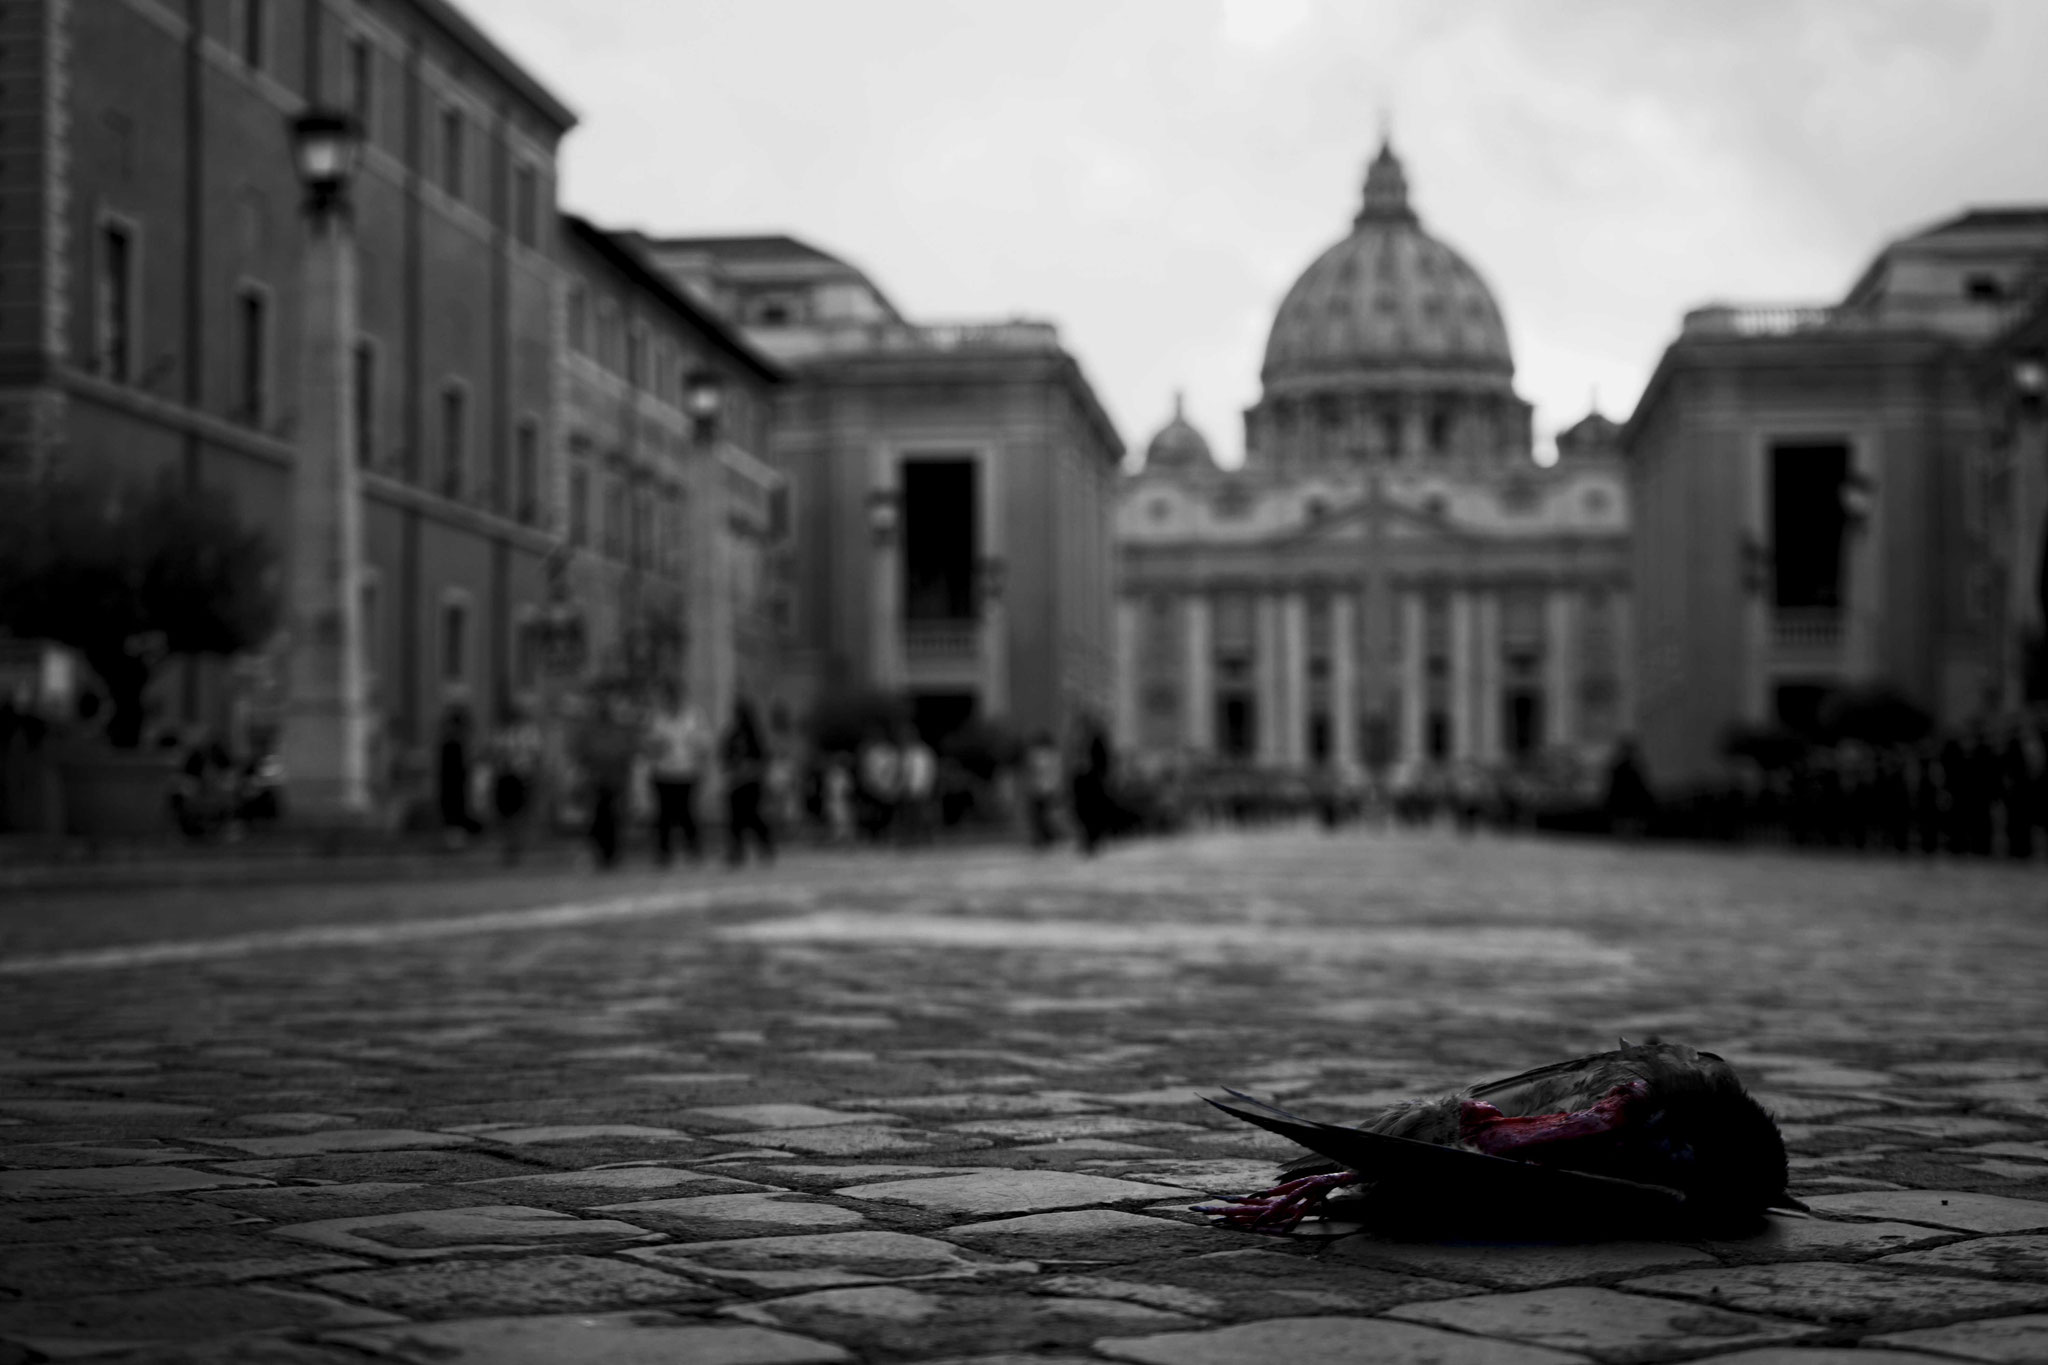 Death at the Vatican. While on a tour of Italy with Tankus the Henge I received several stares of disgust while taking this photograph. I will never resist telling a story with my camera. June 2016